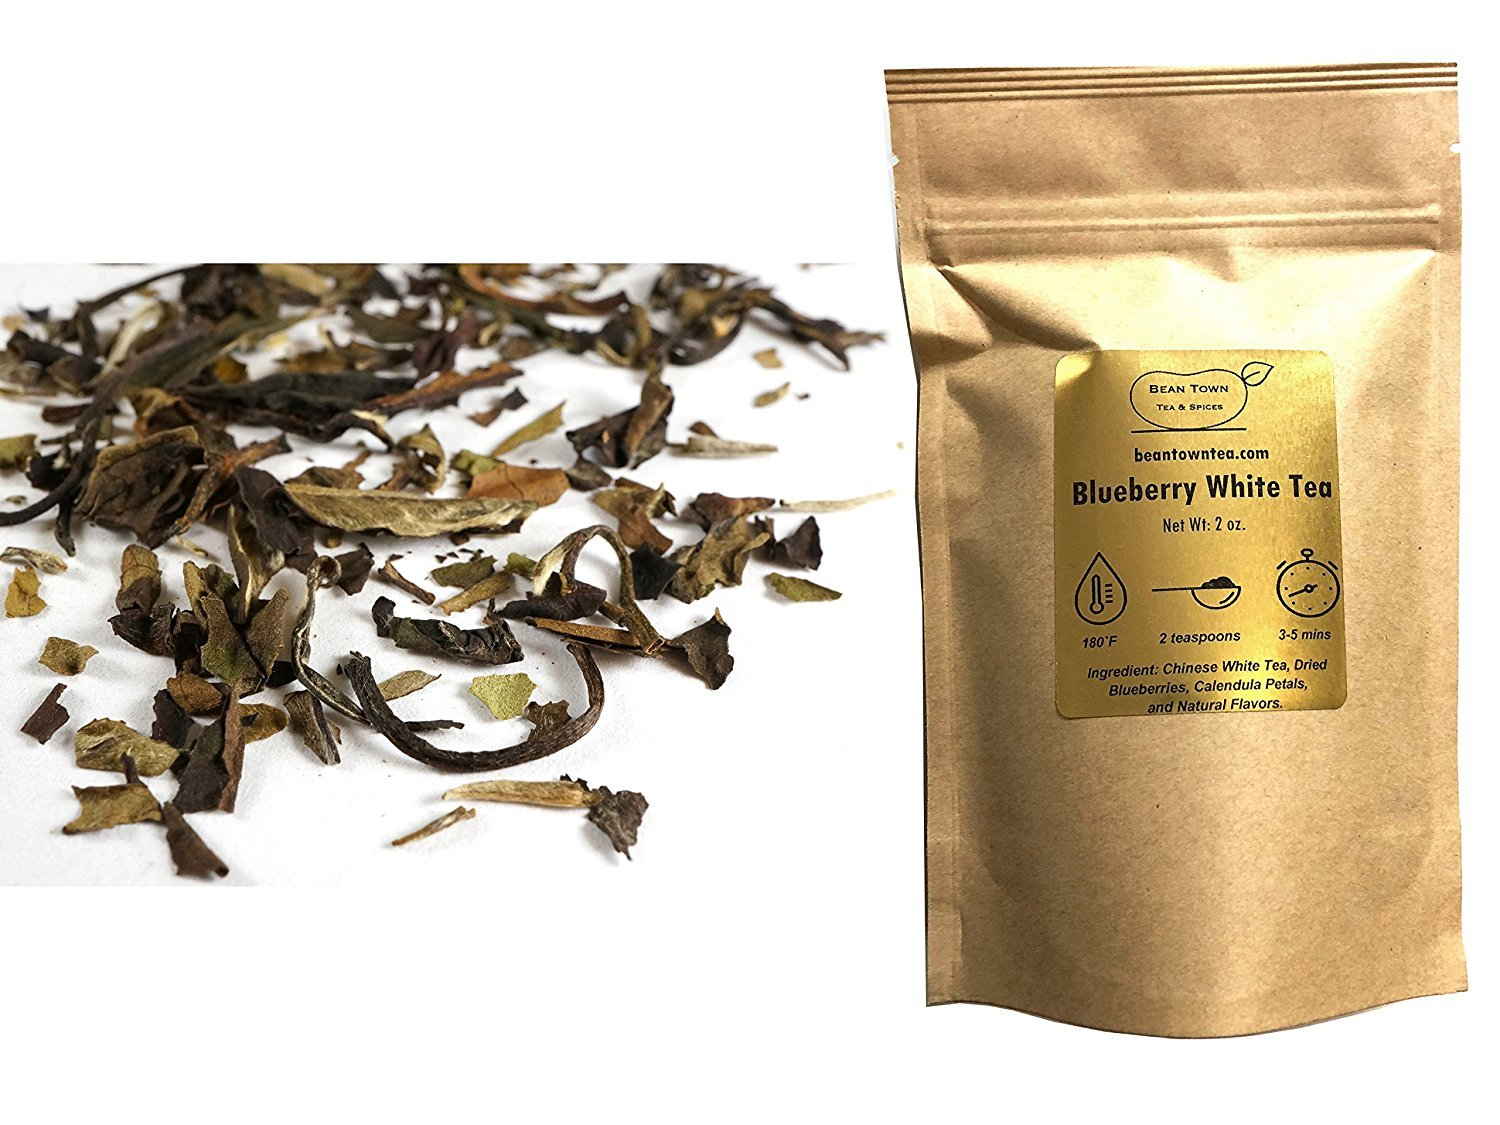 Beantown Tea & Spices - Blueberry White Tea. Gourmet Loose Leaf White Tea. Rich in Antioxidants. 100% Natural. (4 oz. (50 Servings)) by Beantown Tea & Spices